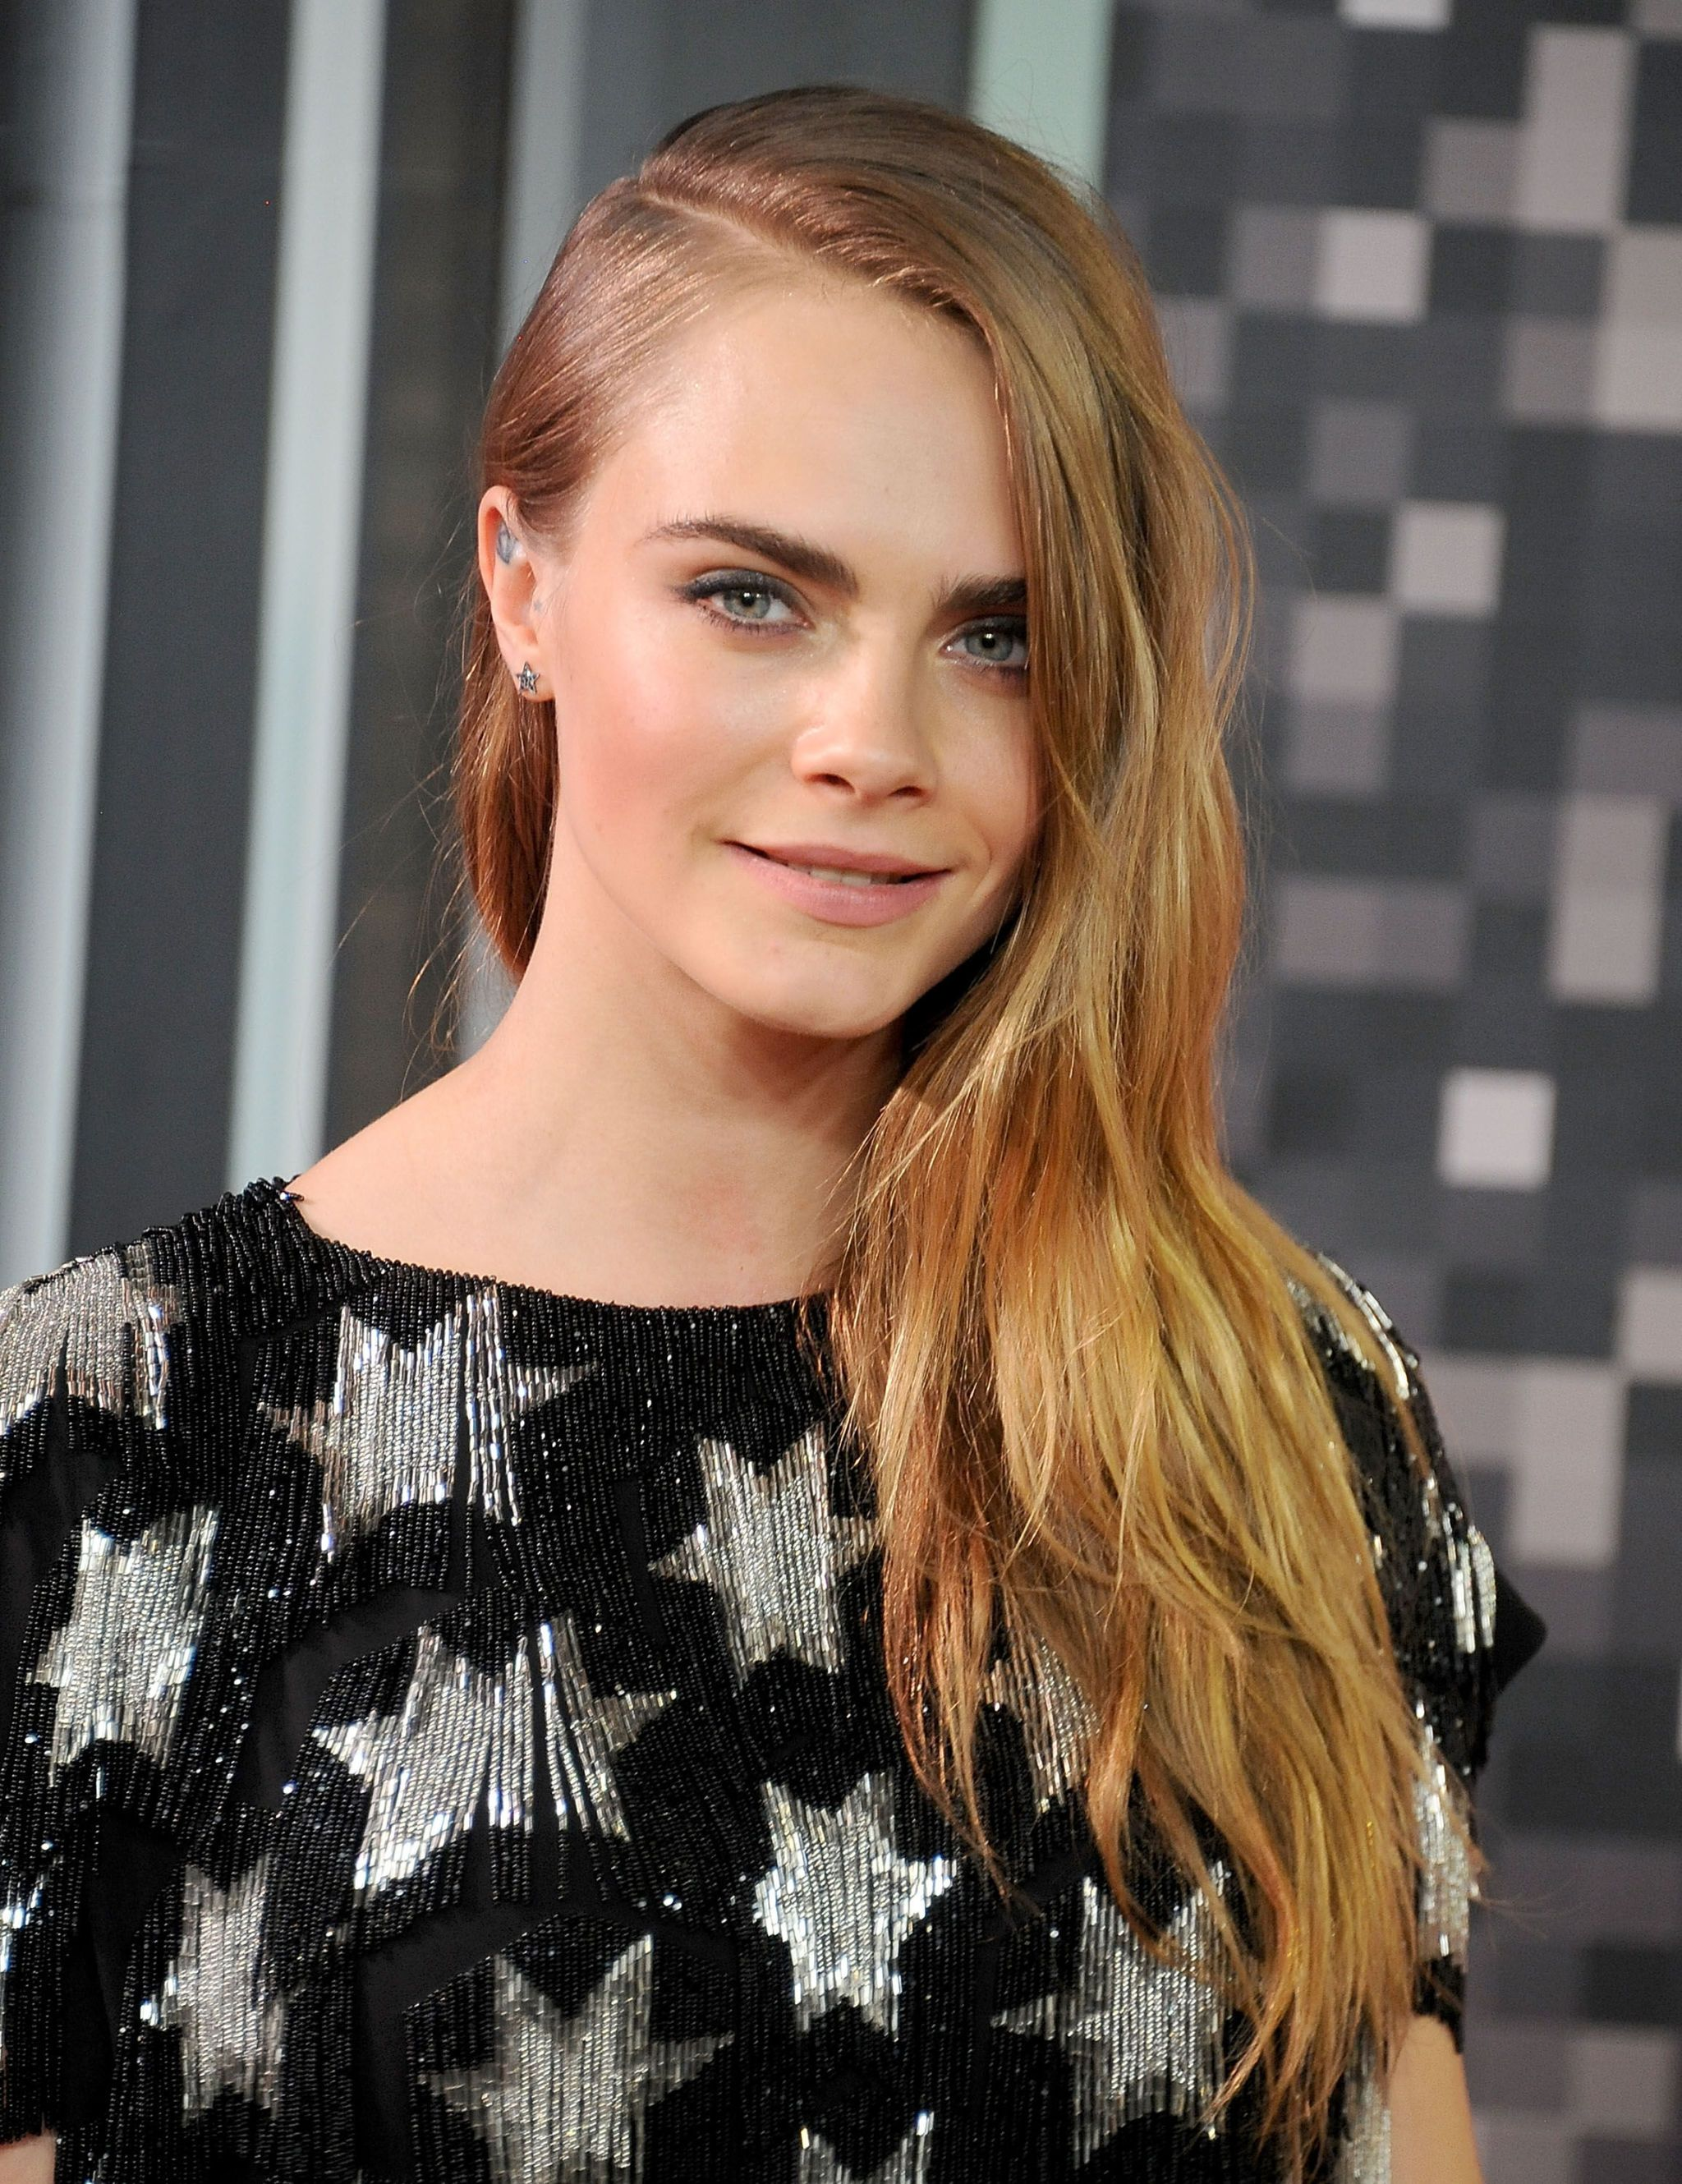 Cara Delevingne Opens Up About Depression on Twitter